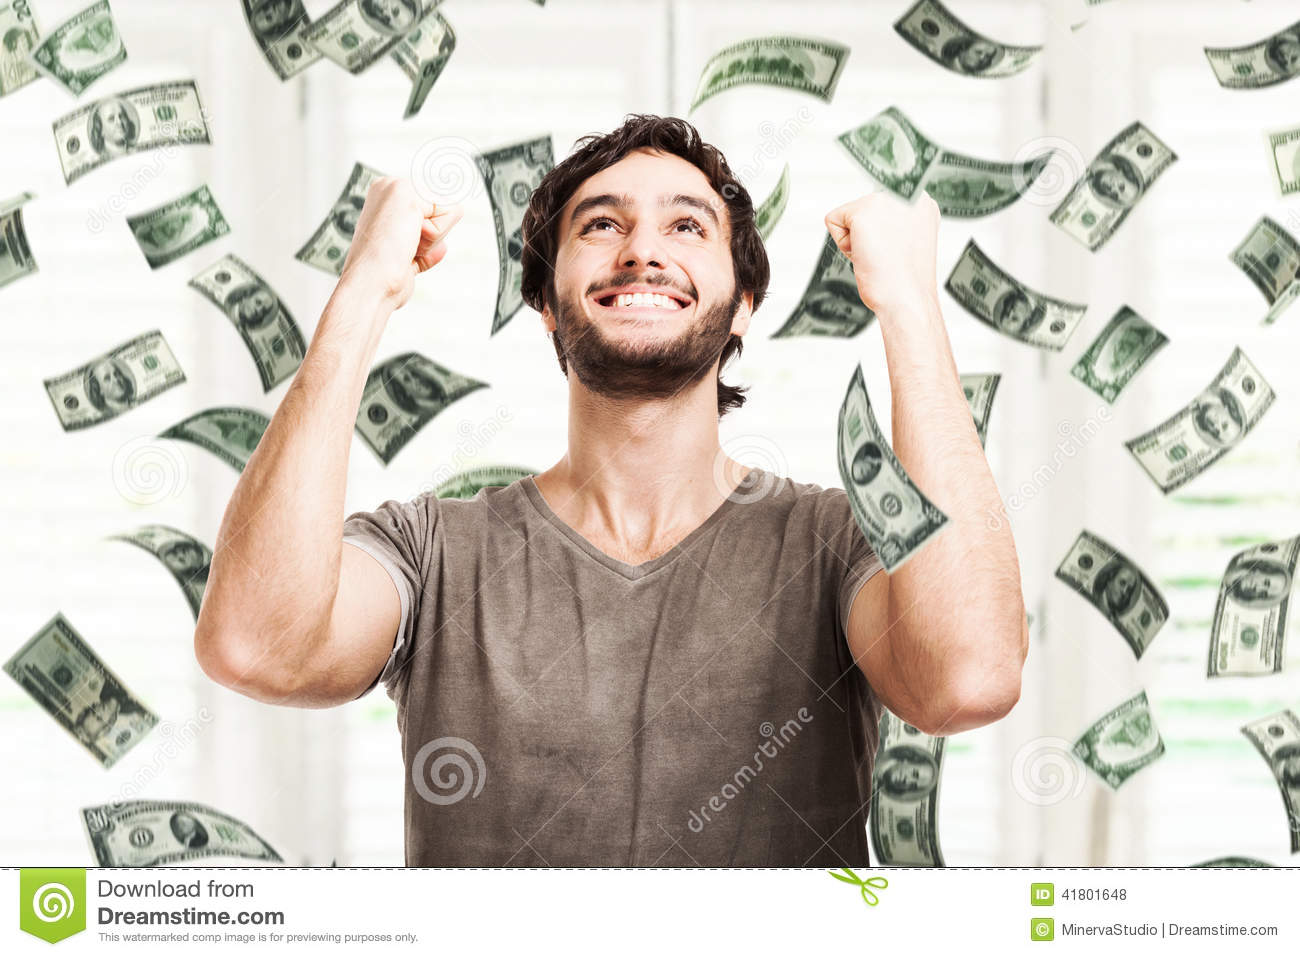 free ebook on how to win the lottery many times